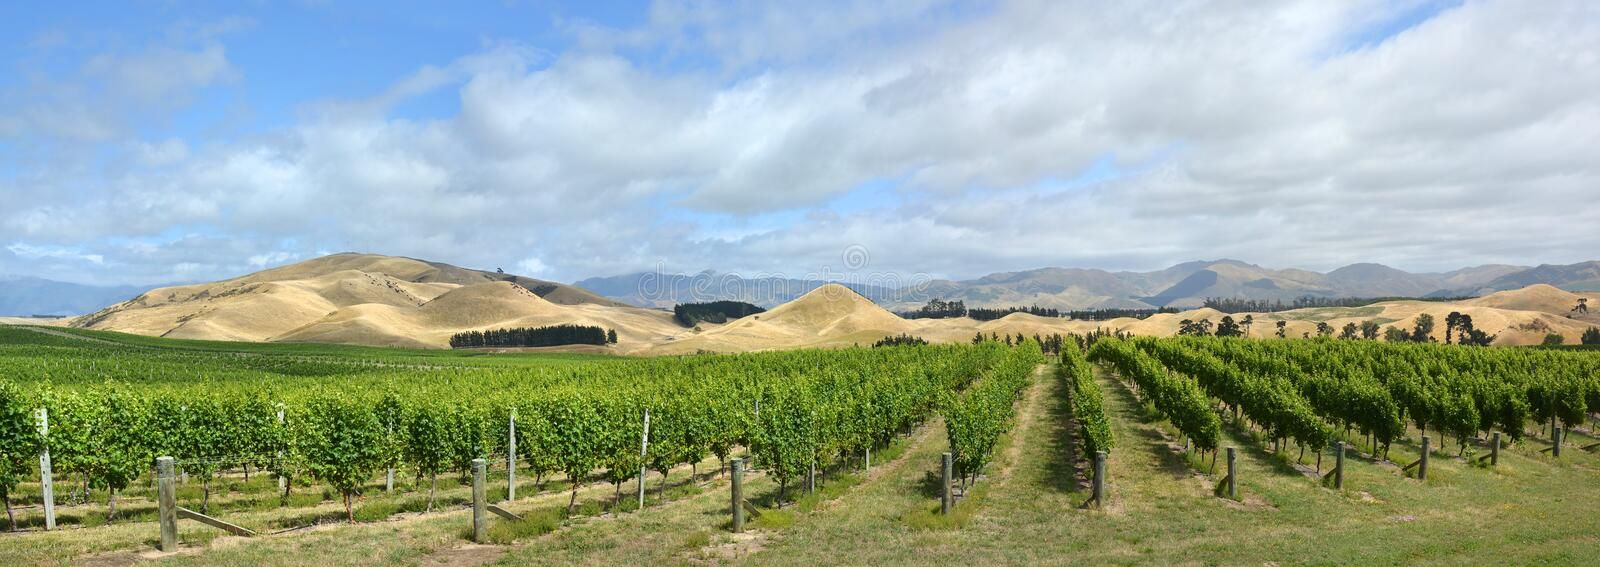 Sauvignon Blanc Grape Vines in Awatere Valley Marlborough New Zealand royalty free stock photography